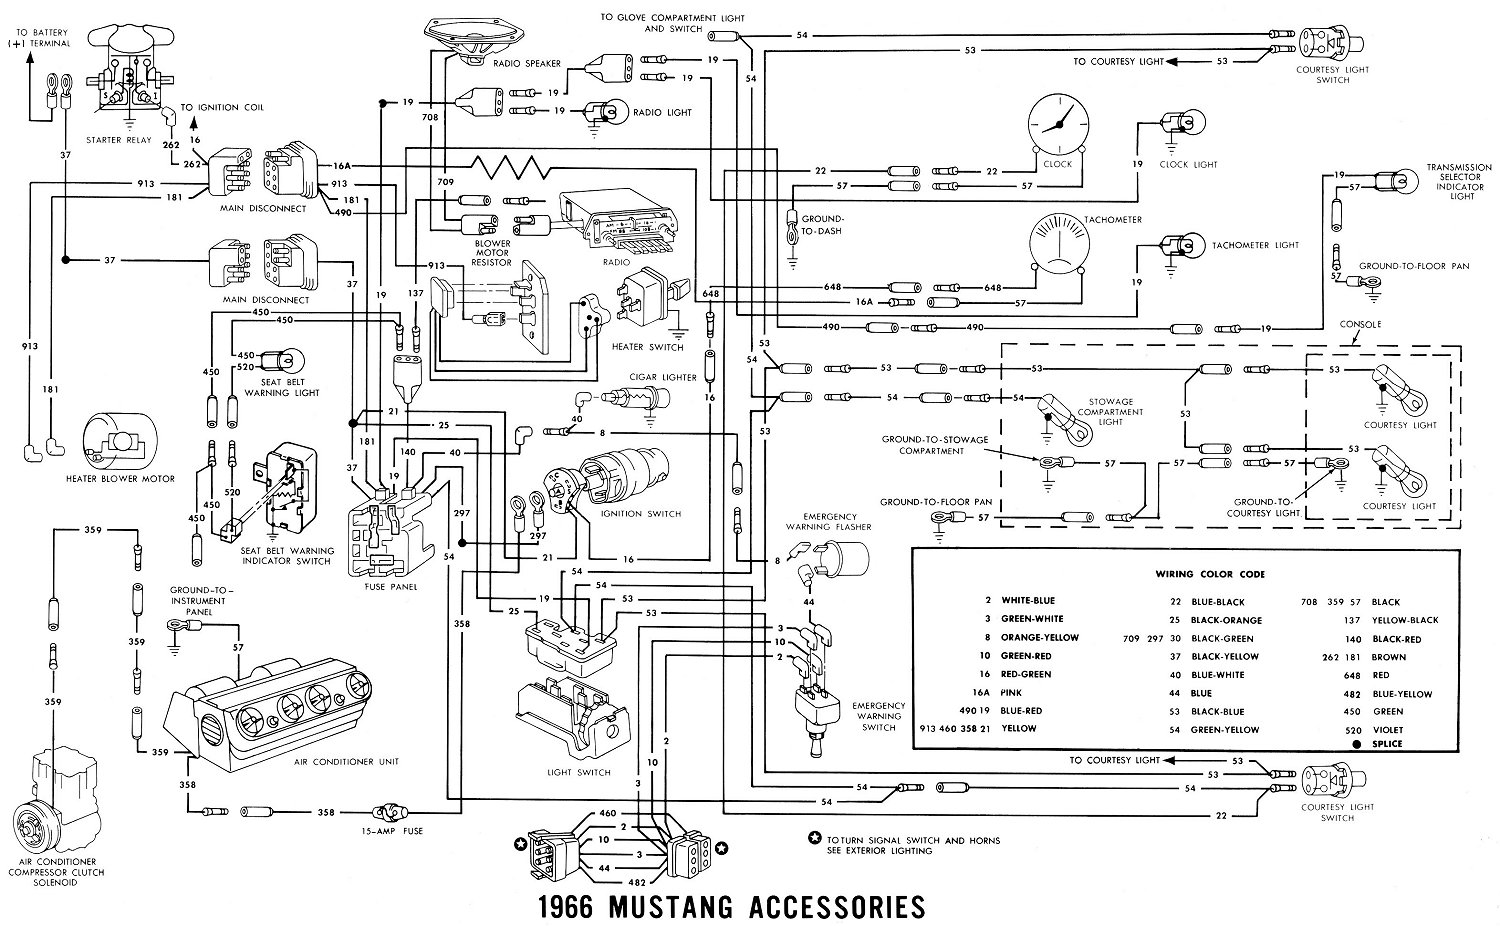 1966 Mustang Radio Wiring Tech Tips Diagrams. 1966 Mustang Wiring Diagrams Average Joe Restoration Rh Averagejoerestoration 1965 Radio Color Codes S. Wiring. 1969 Mustang Engine Vacuum Diagram At Scoala.co